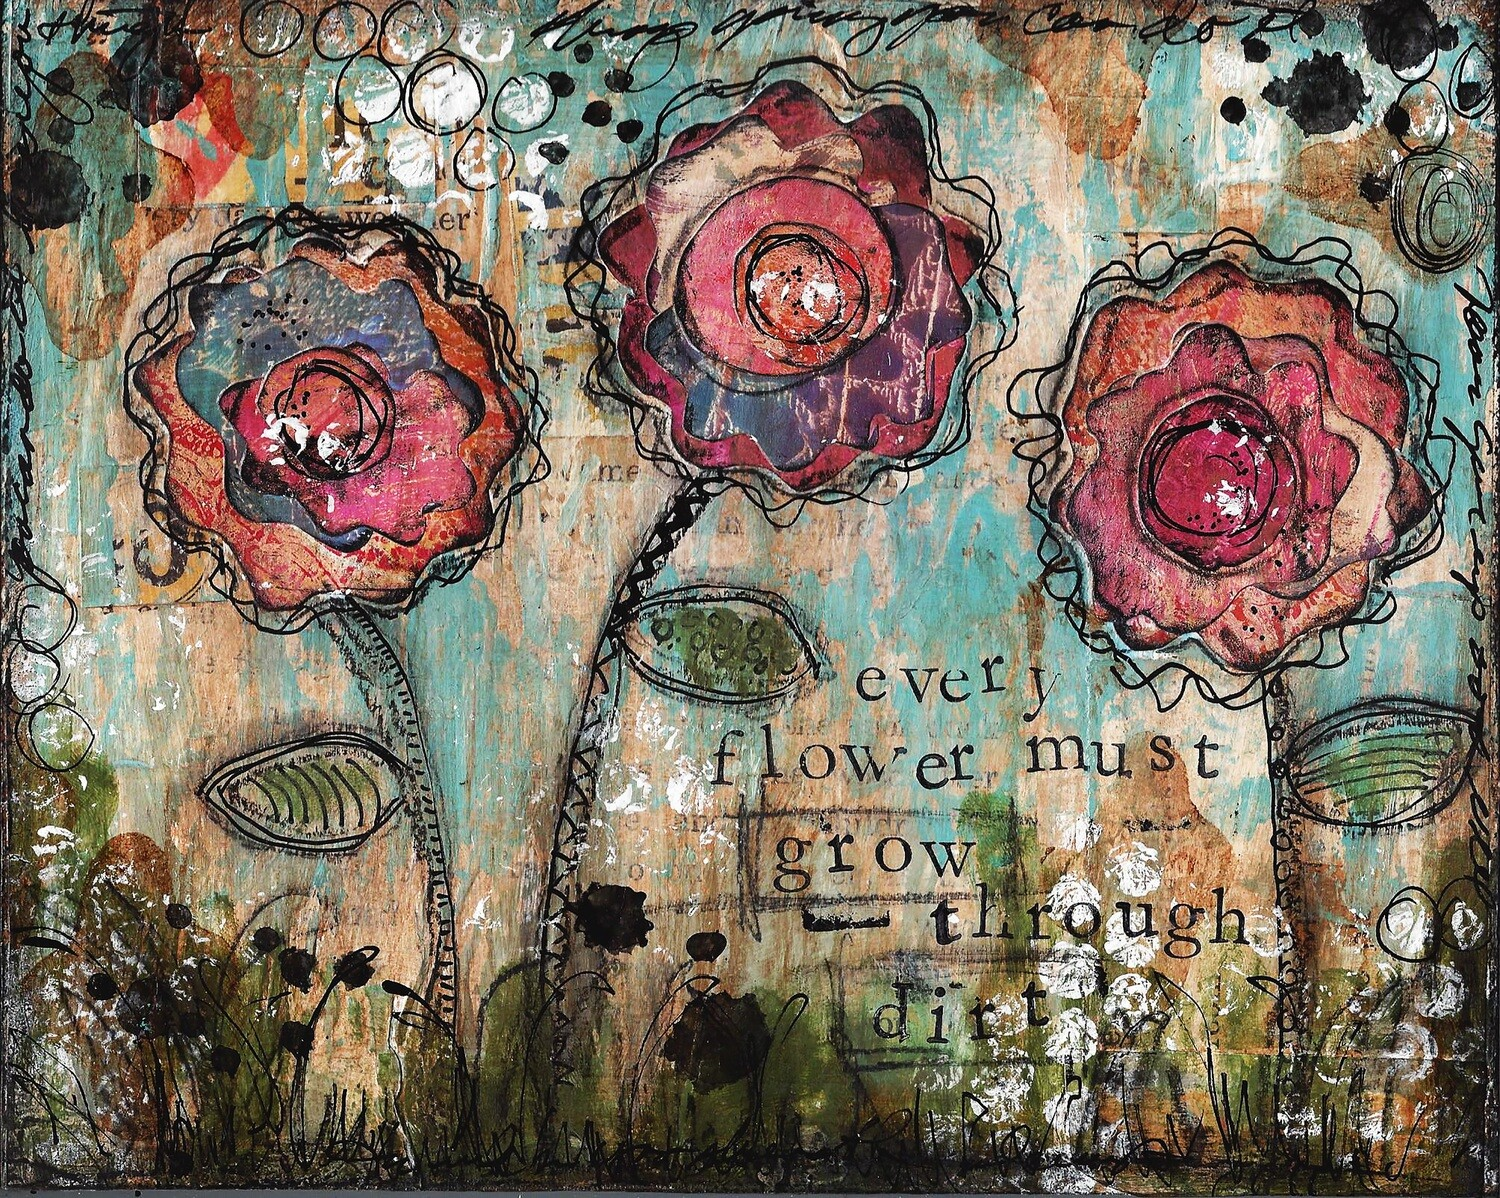 """Every flower must grow through dirt"" Print on Wood 7x5 Overstock"